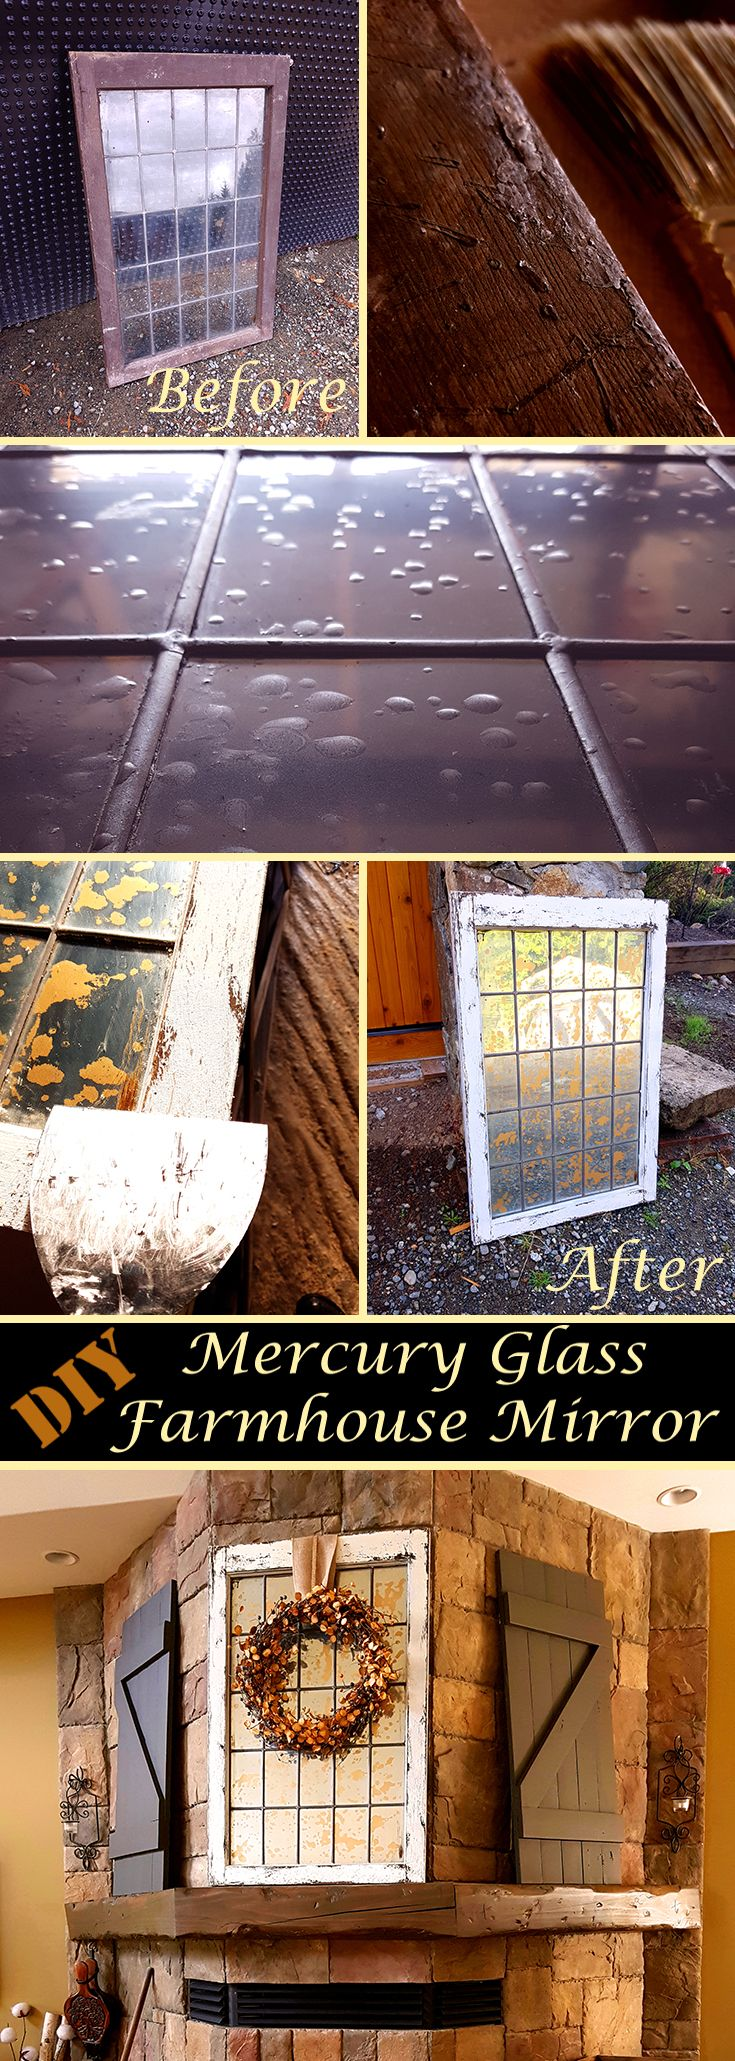 This Rustic Mercury Glass Mirror looks great on my Mantle!  Following this DIY, I gave an old salvaged window new life as a Farmhouse Mirror.  #rustic #decor #farmhouse #DIY #chippypaint #salvage #mercuryglass #project #design #homedecor #mantledecor   http://rusticreverence.com/